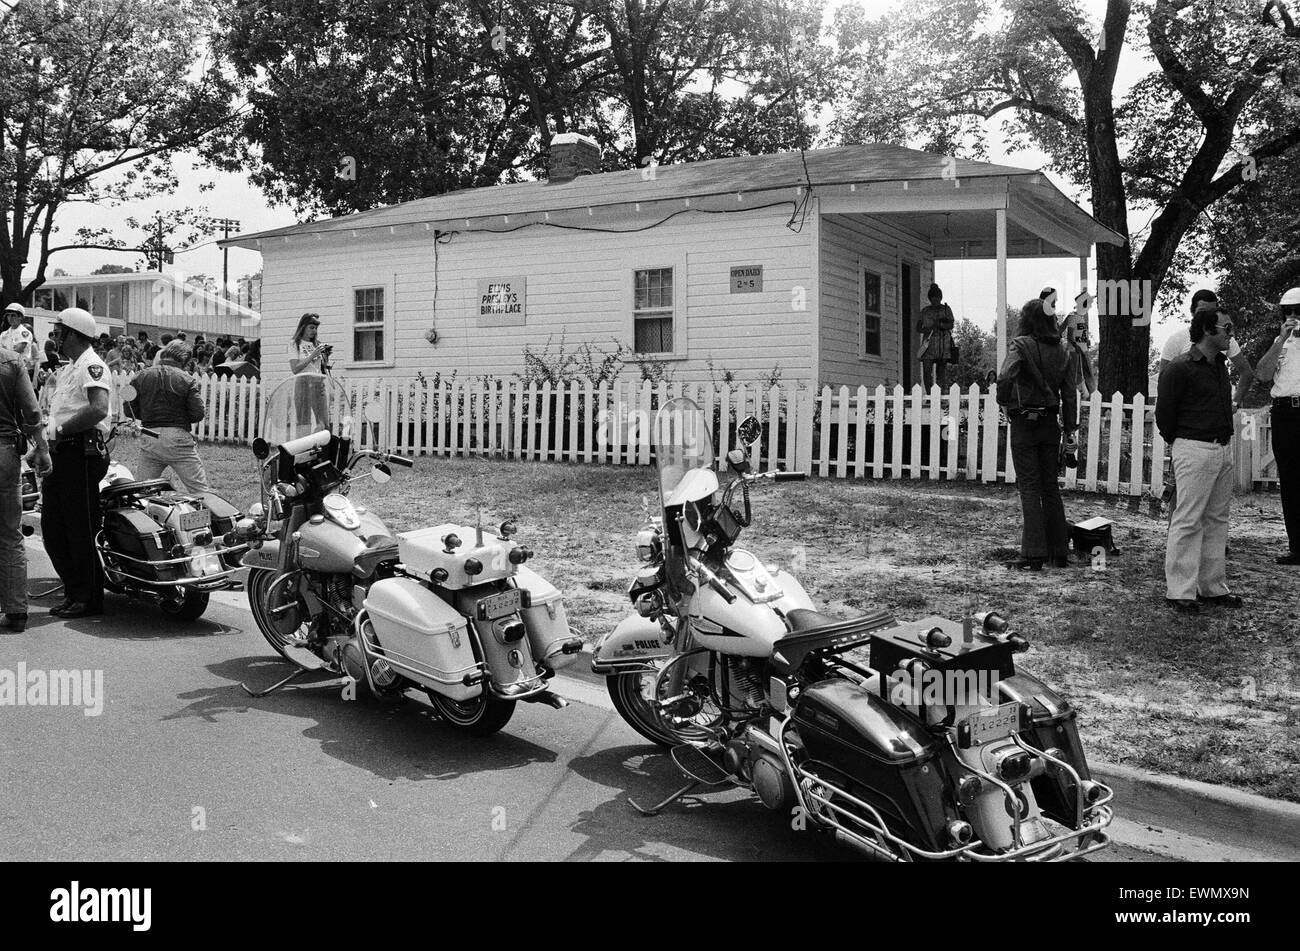 Home and Birthplace of Elvis Presley in Tupelo, Lee County, Mississippi, USA, 27th August 1973. - Stock Image